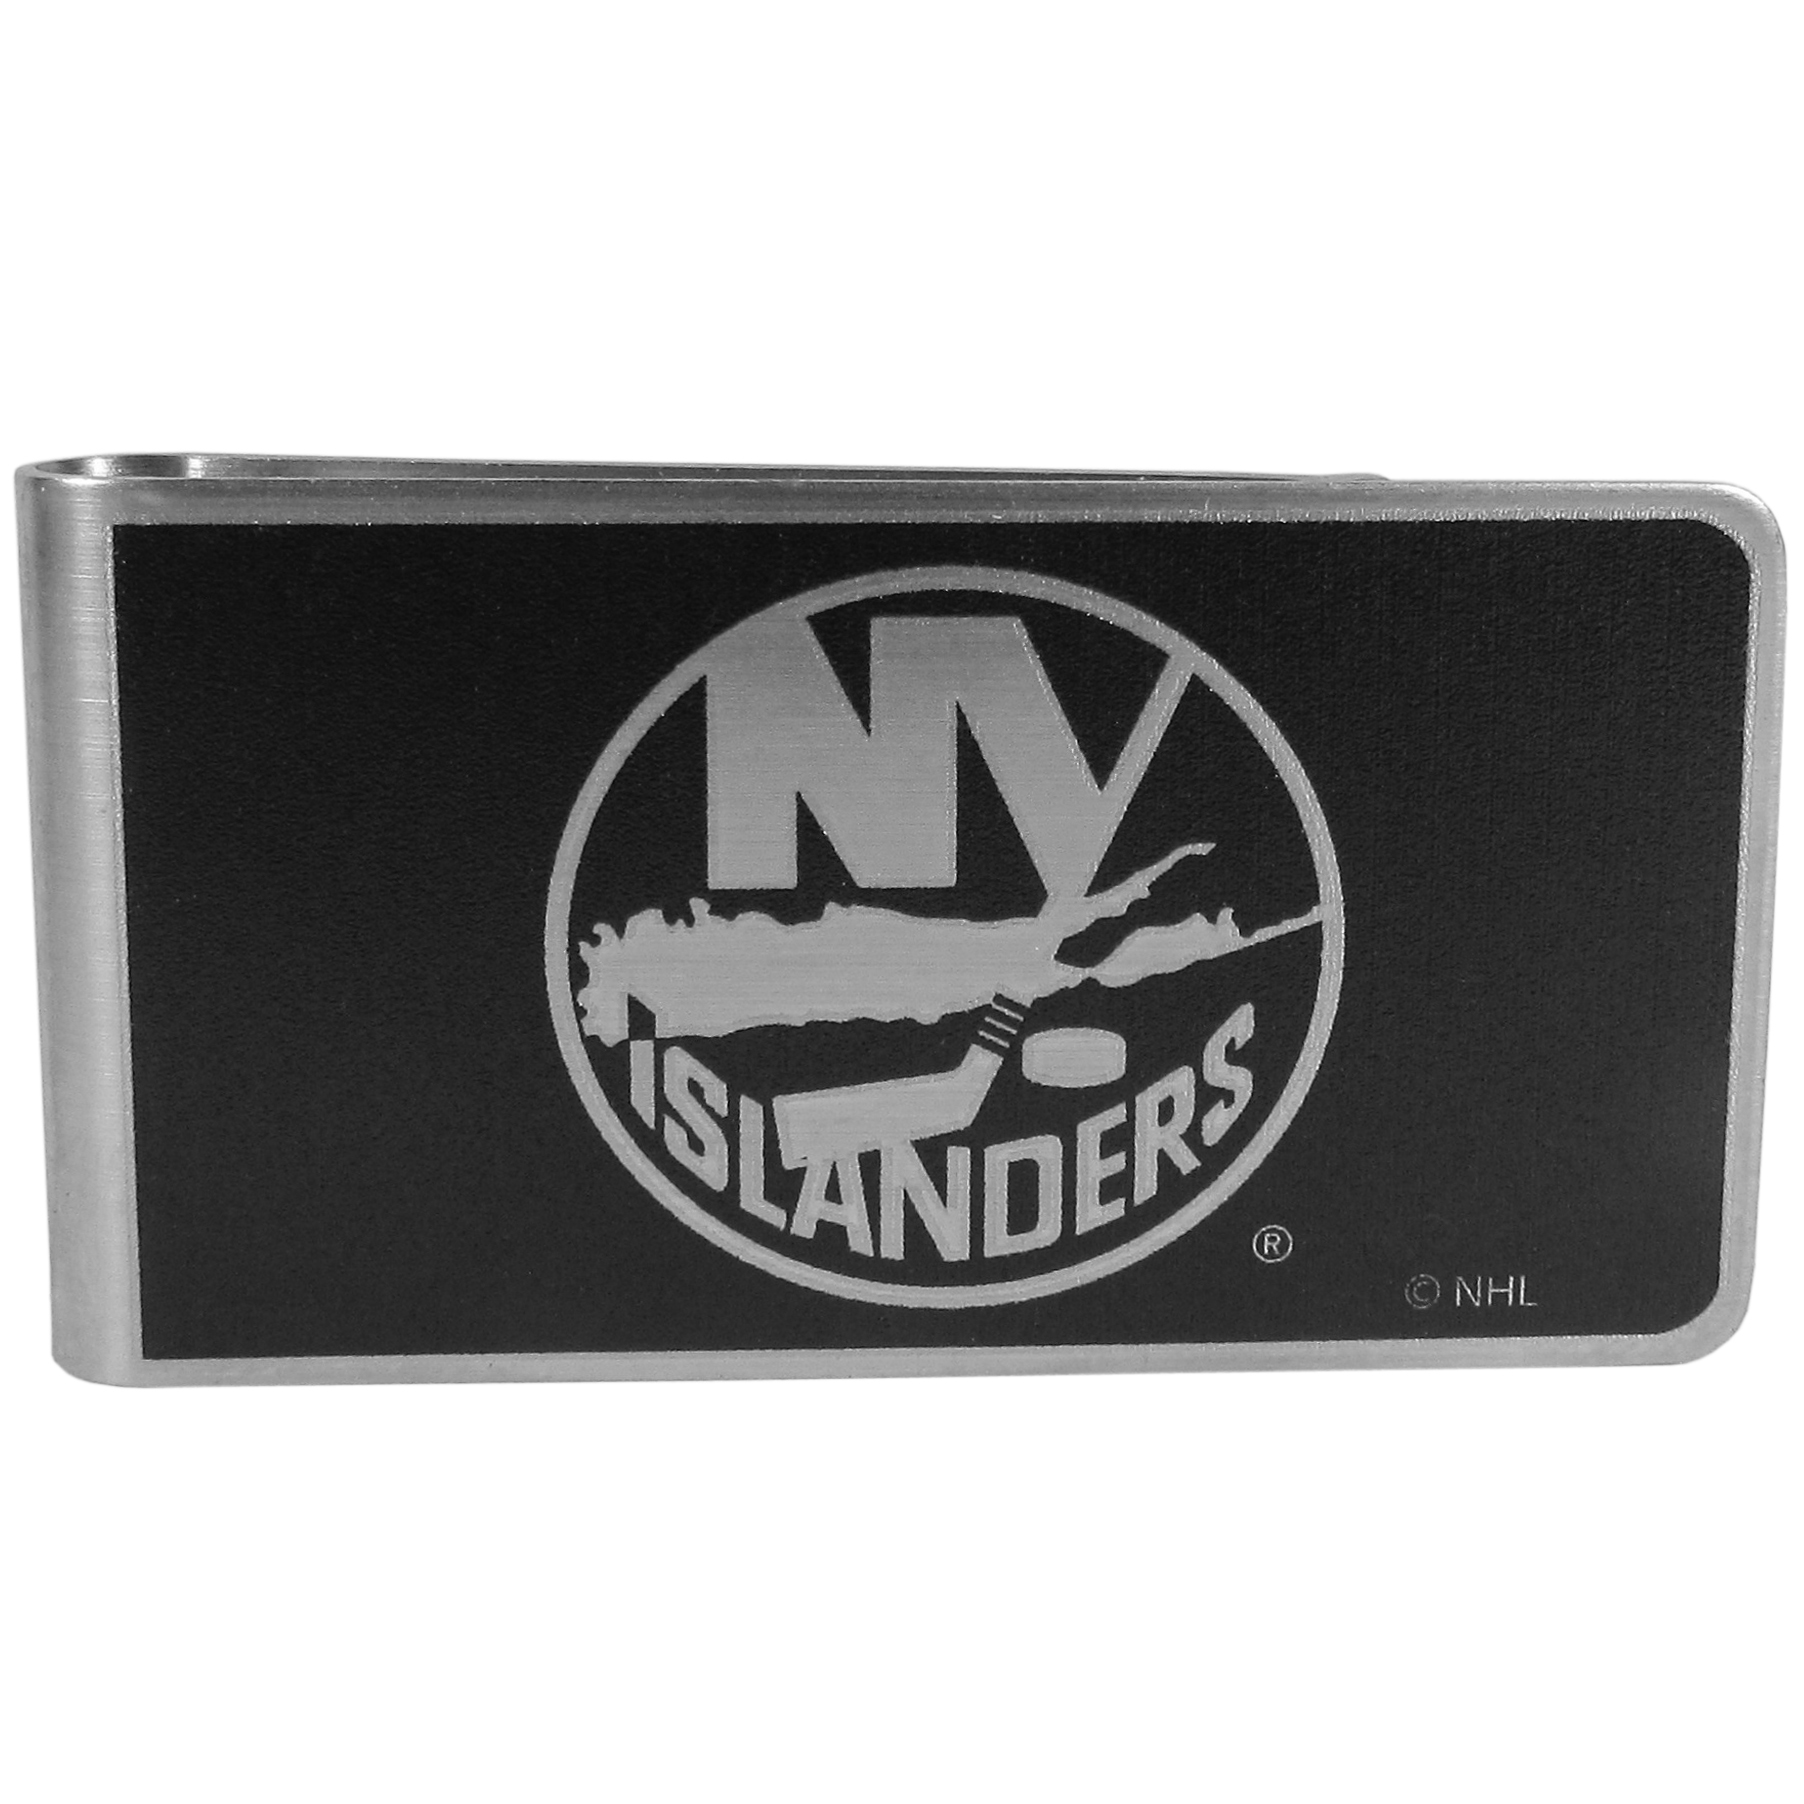 New York Islanders® Black and Steel Money Clip - Our monochromatic steel money clips have a classic style and superior quality. The strong, steel clip has a black overlay of the New York Islanders® logo over the brushed metal finish creating a stylish men's fashion accessory that would make any fan proud.